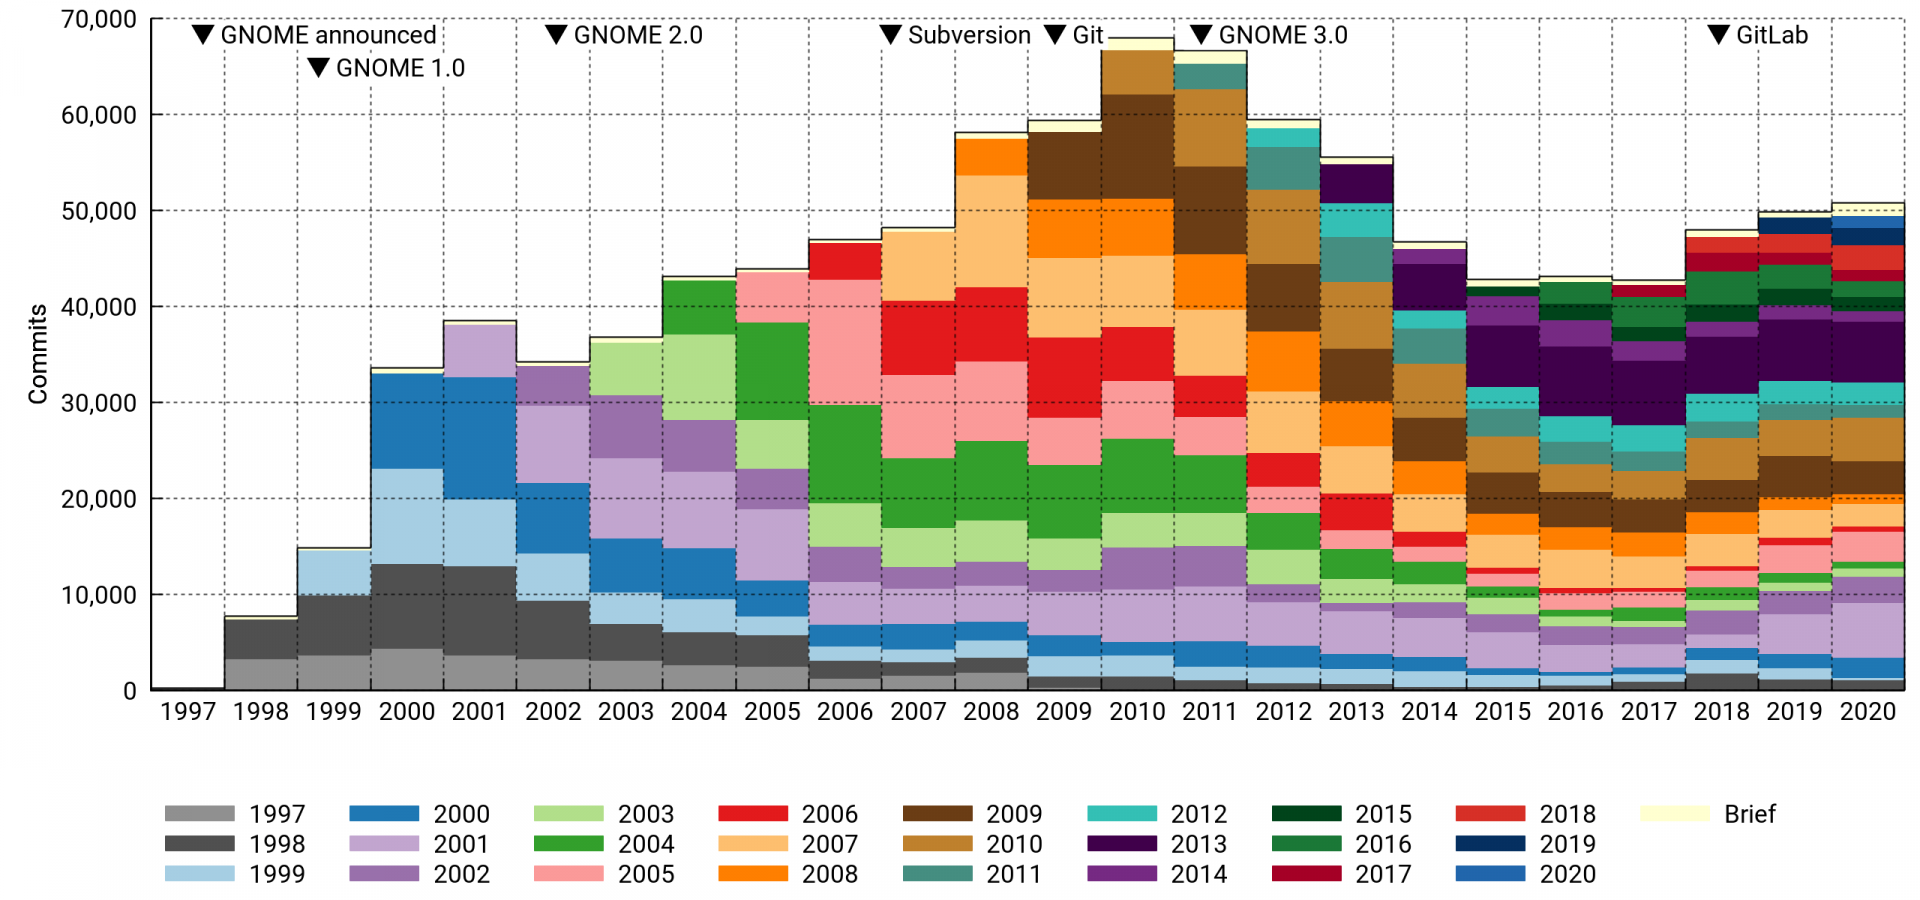 Number of GNOME commits per year, first-year cohorts